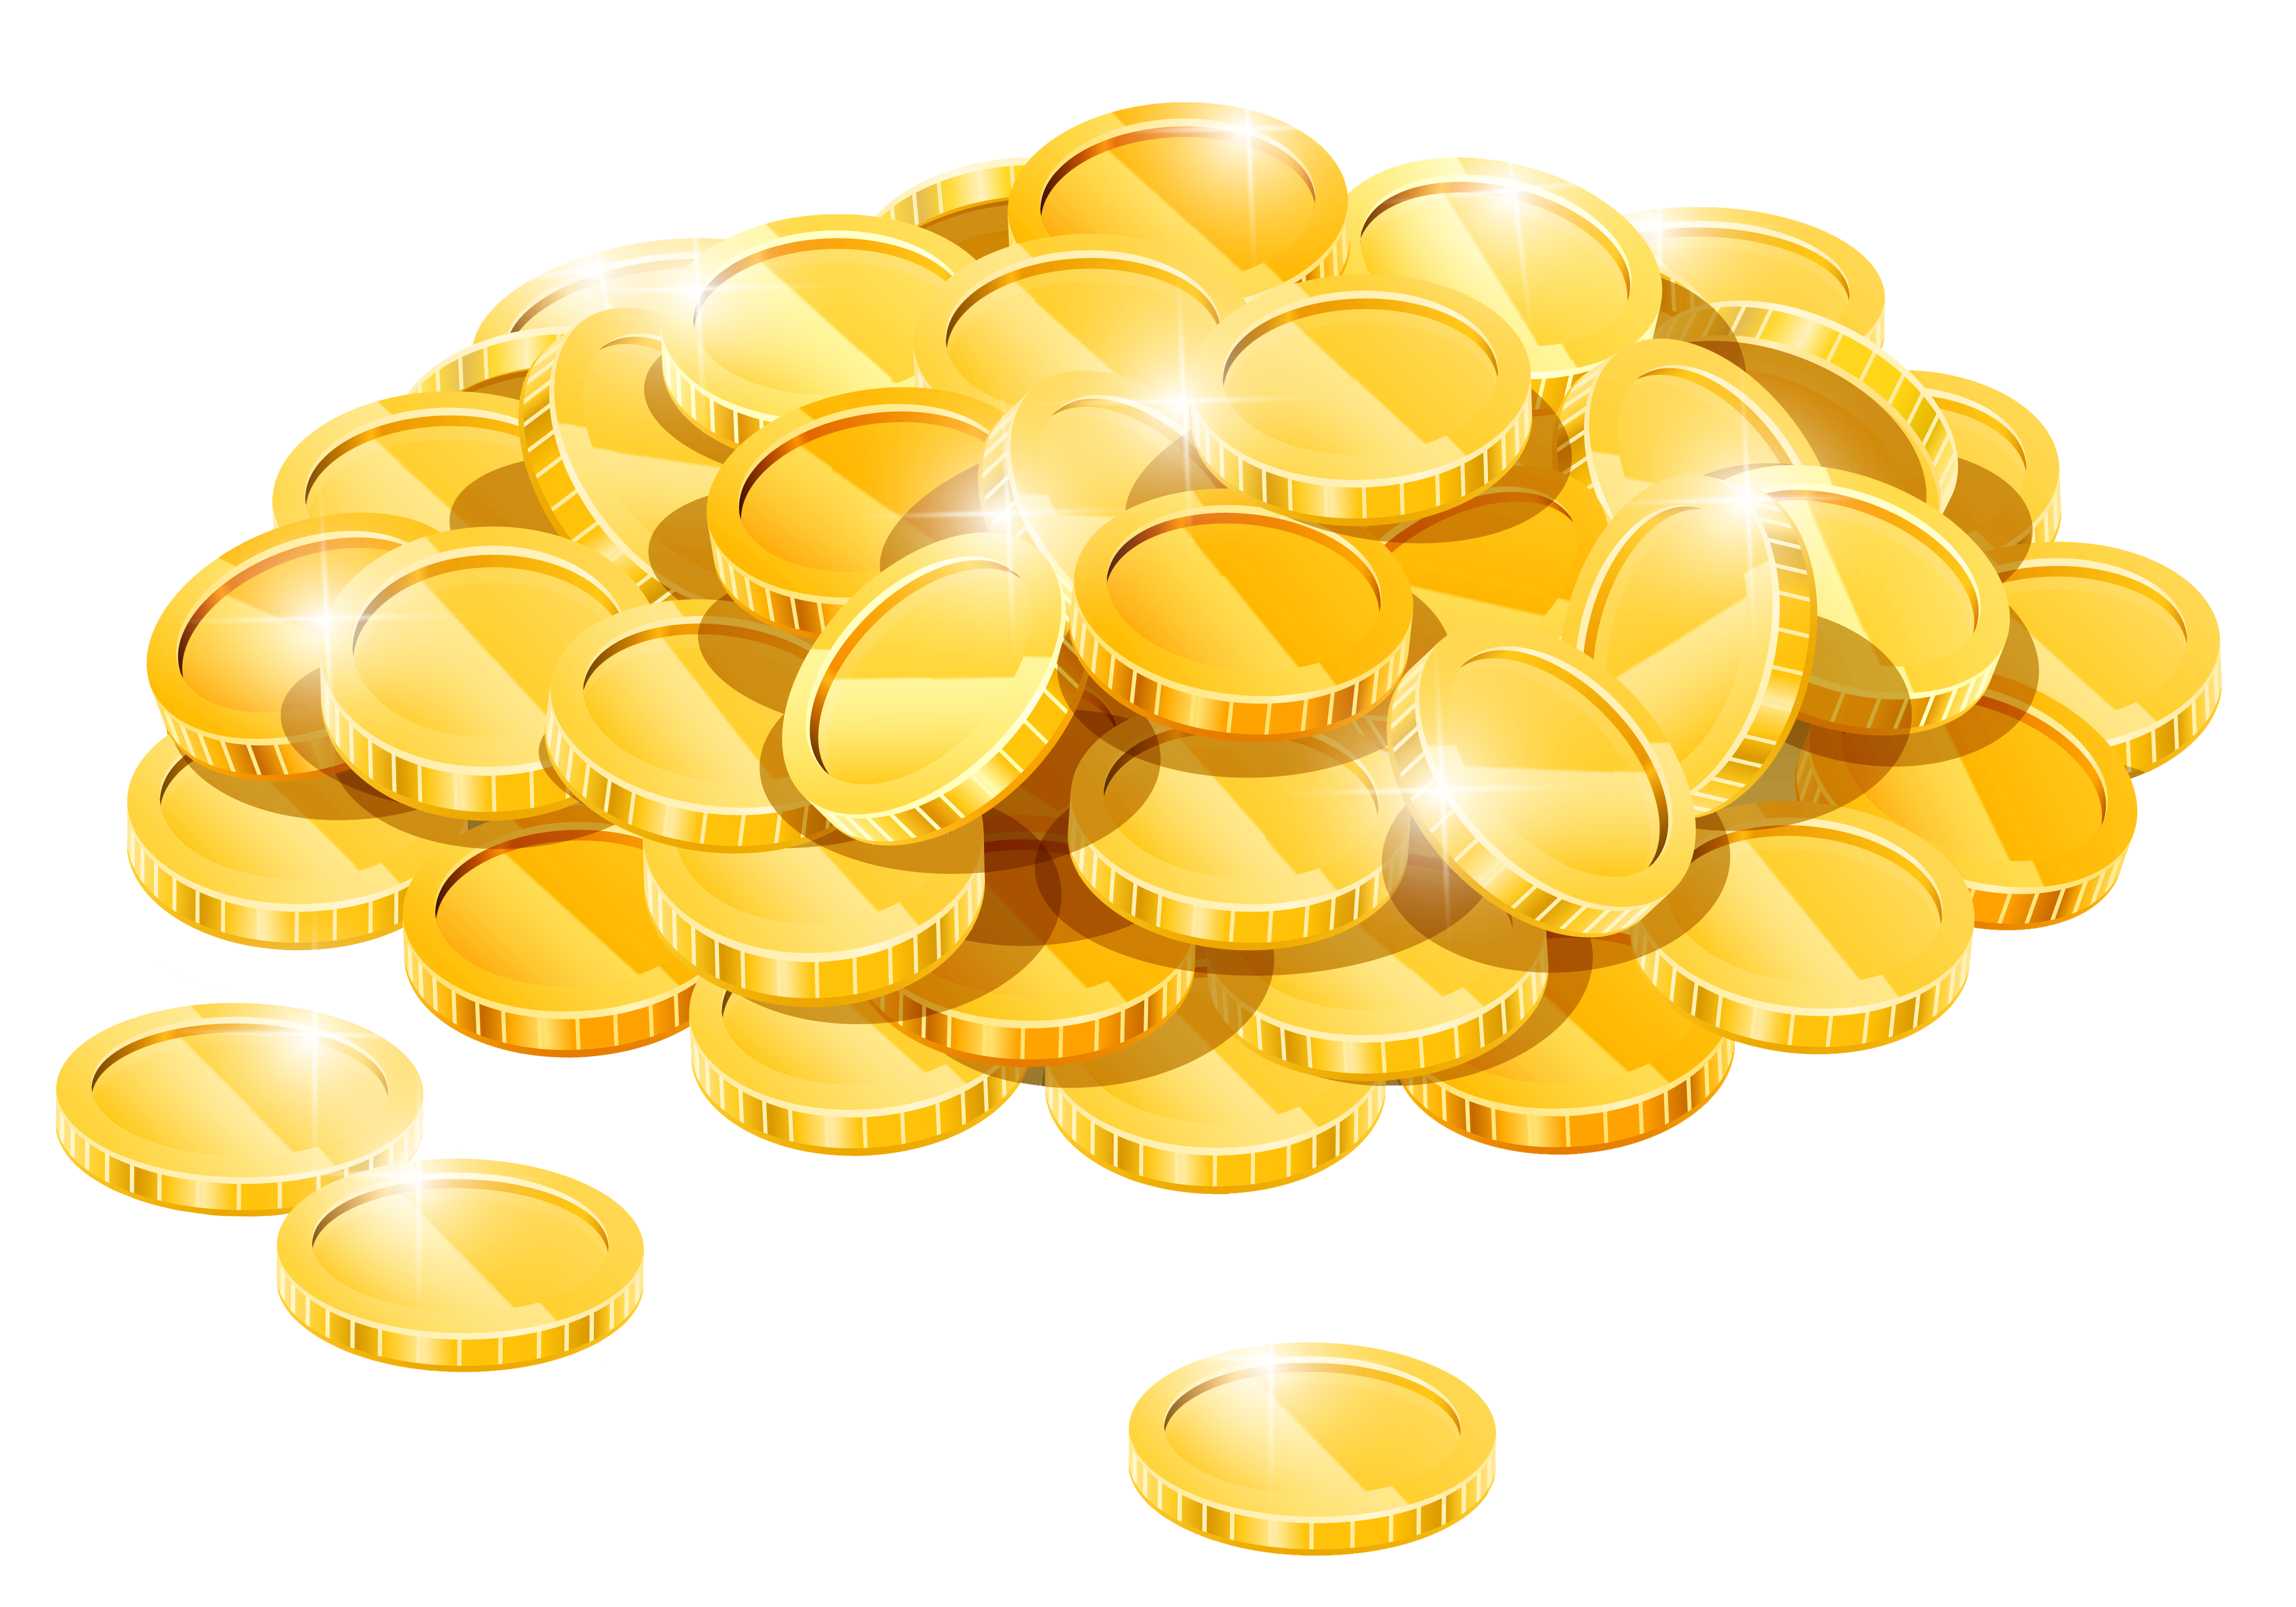 Gold coin clipart no background - Clip Art Library vector royalty free